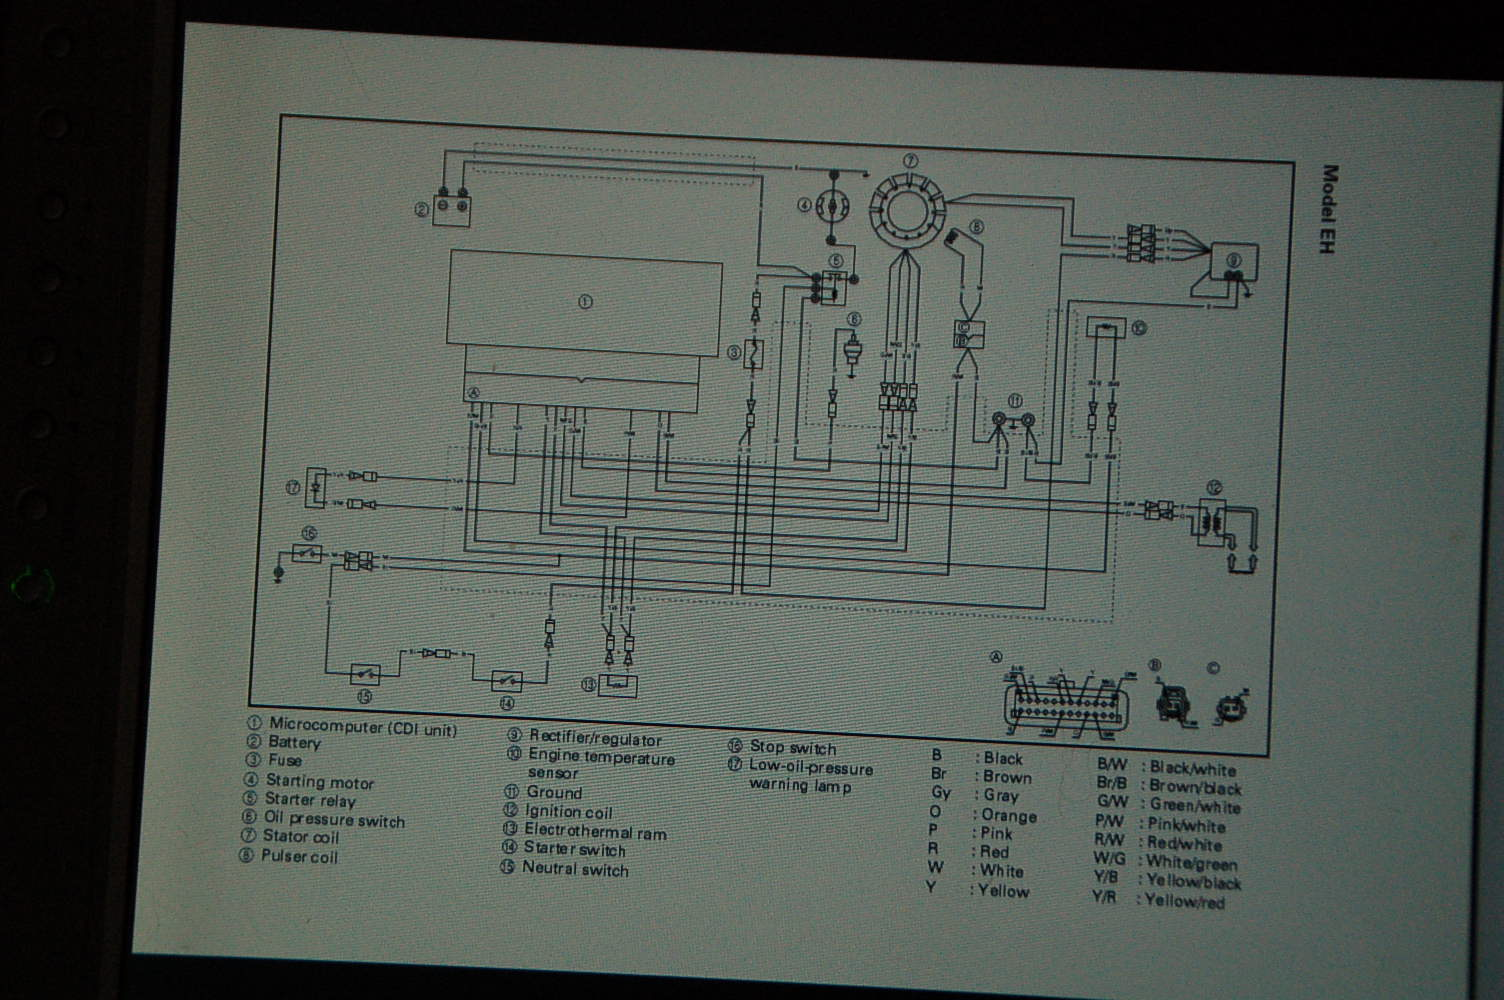 wiring up yamaha 30 boat design net Yamaha 90 Outboard Wiring Diagram at soozxer.org